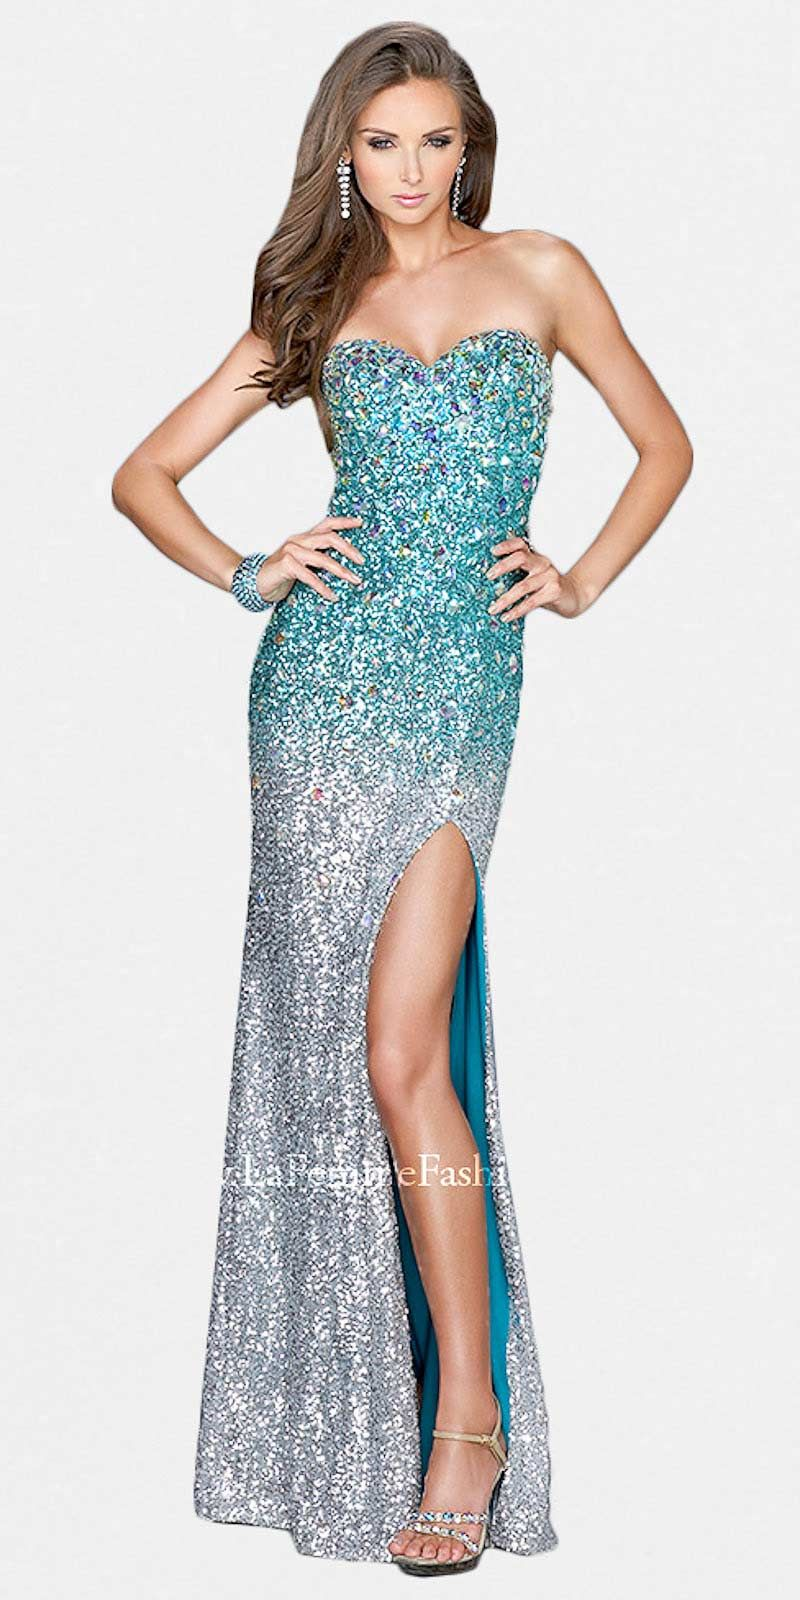 Sexy strapless rhinestone and sequin slit prom dresses by la femme